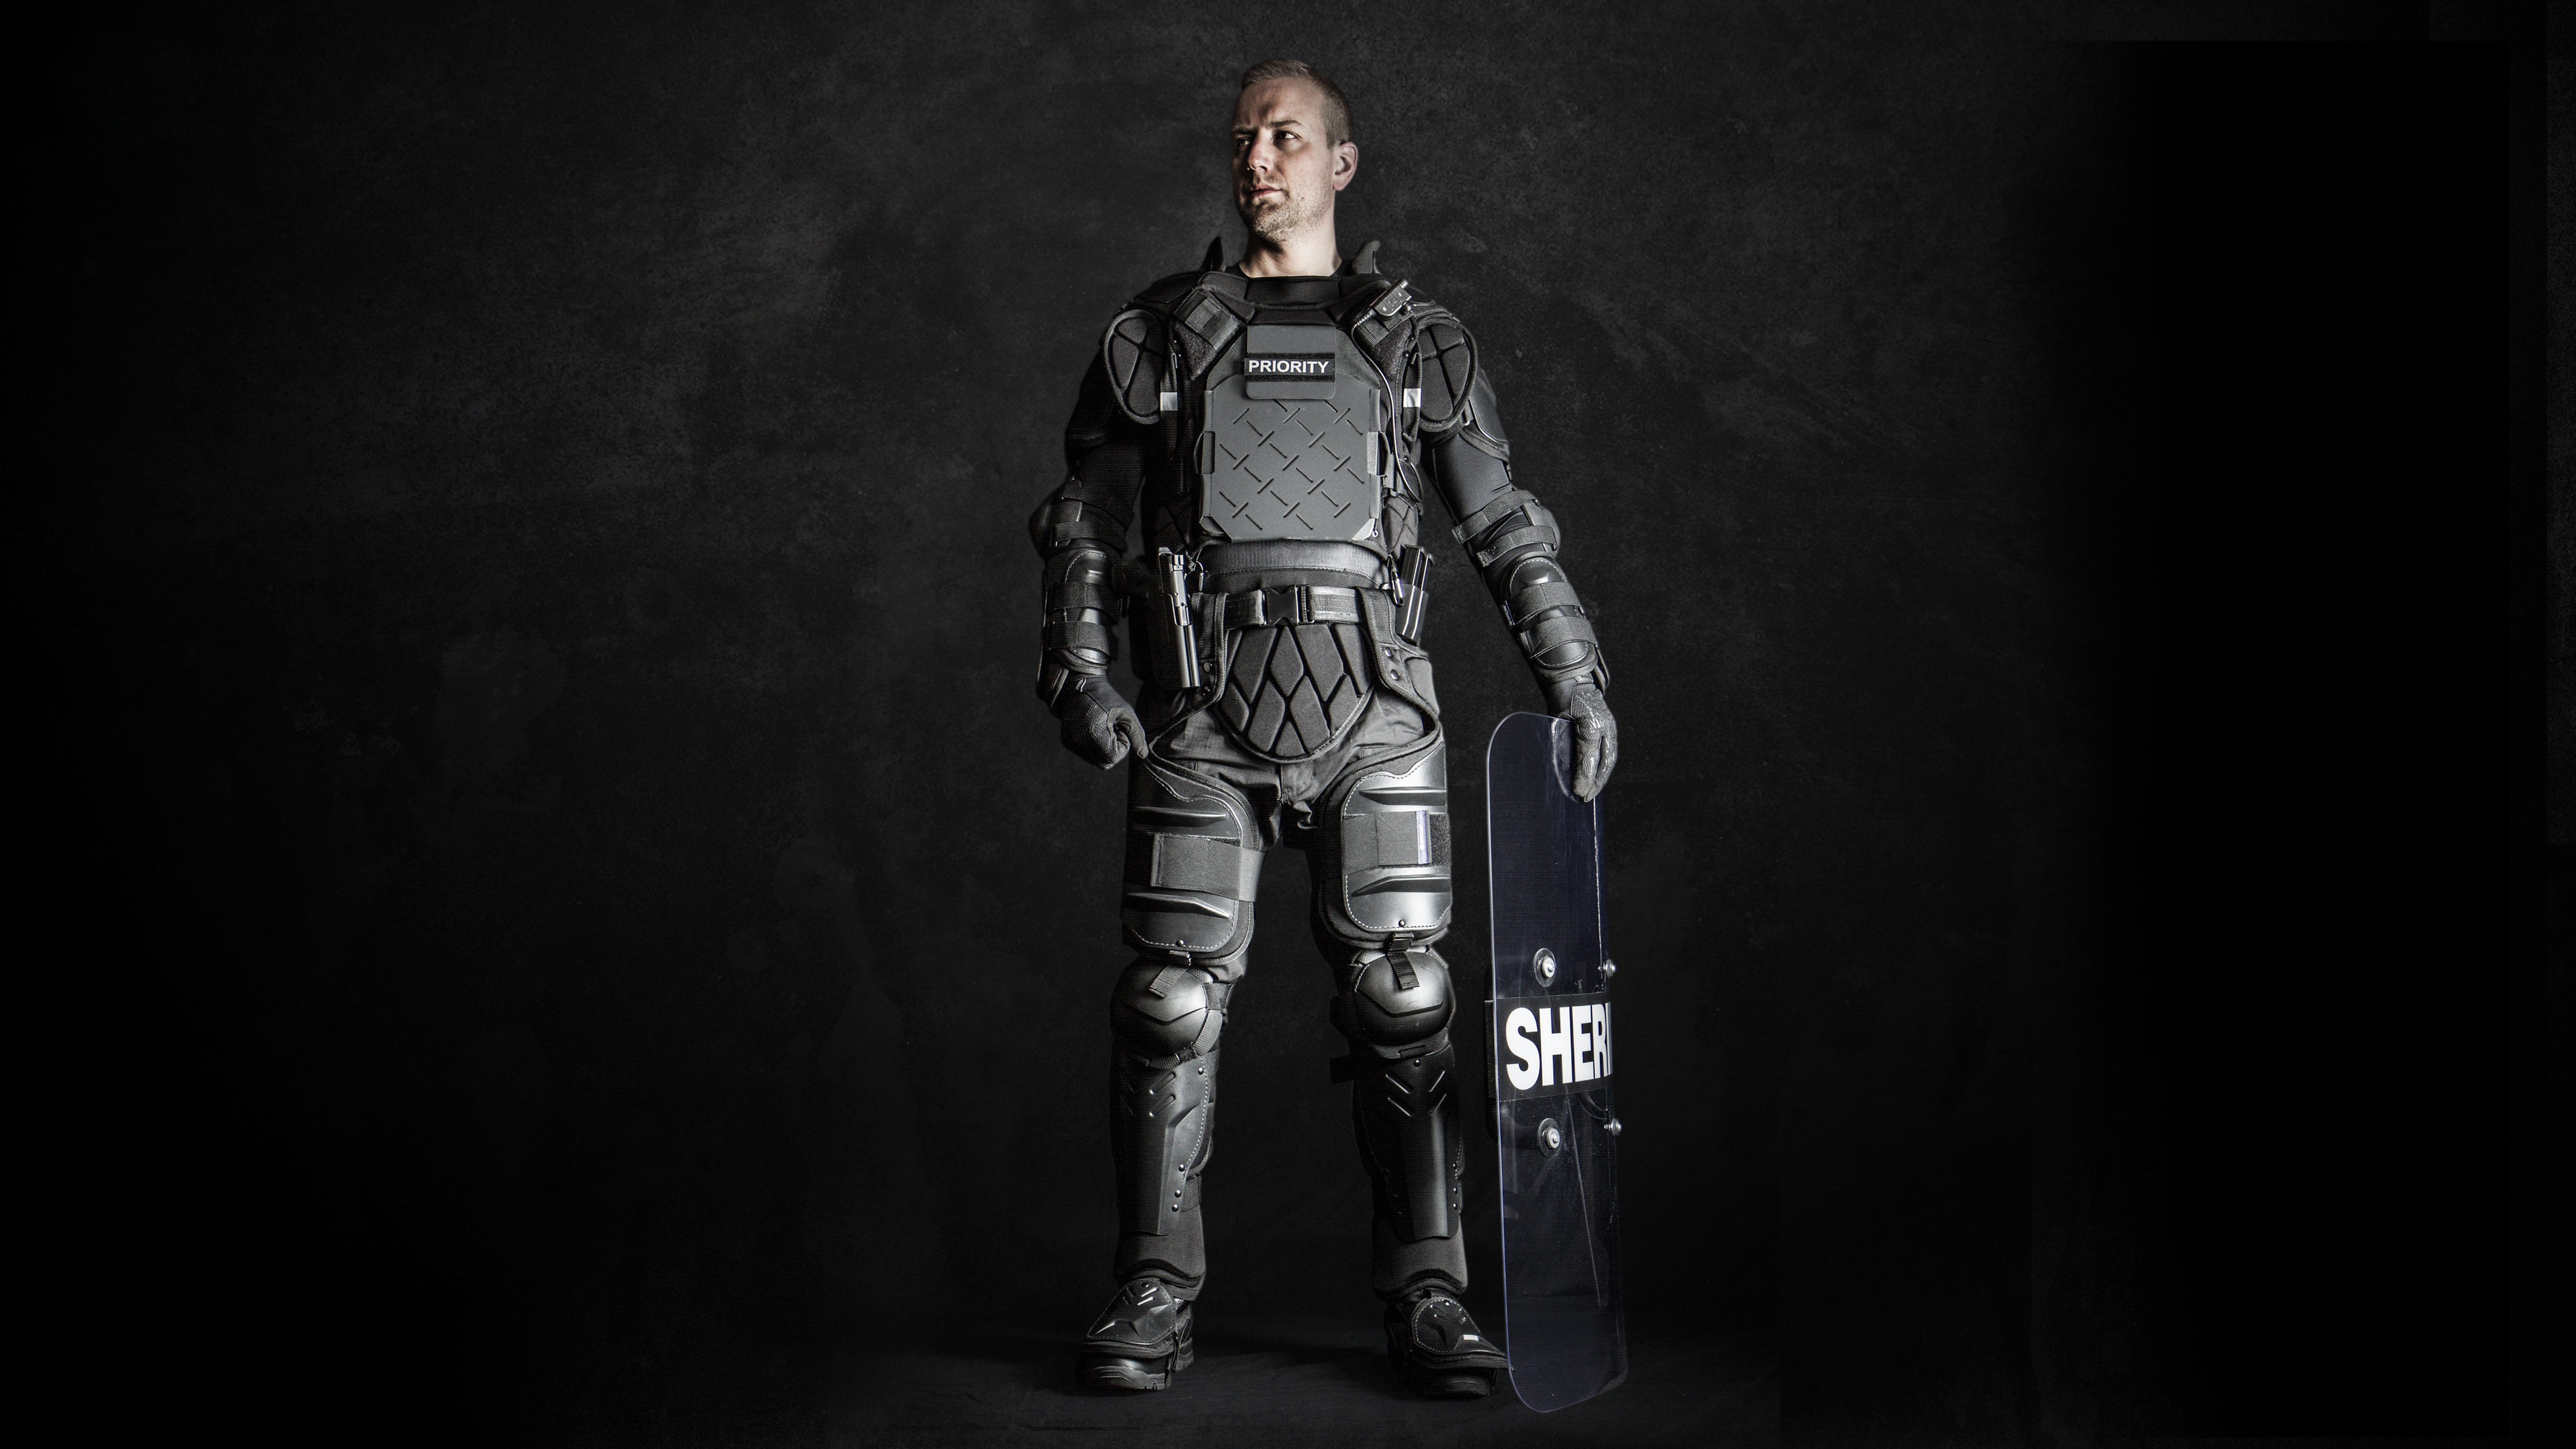 priority_designs_sirchie_tactical_gear_in_use_model